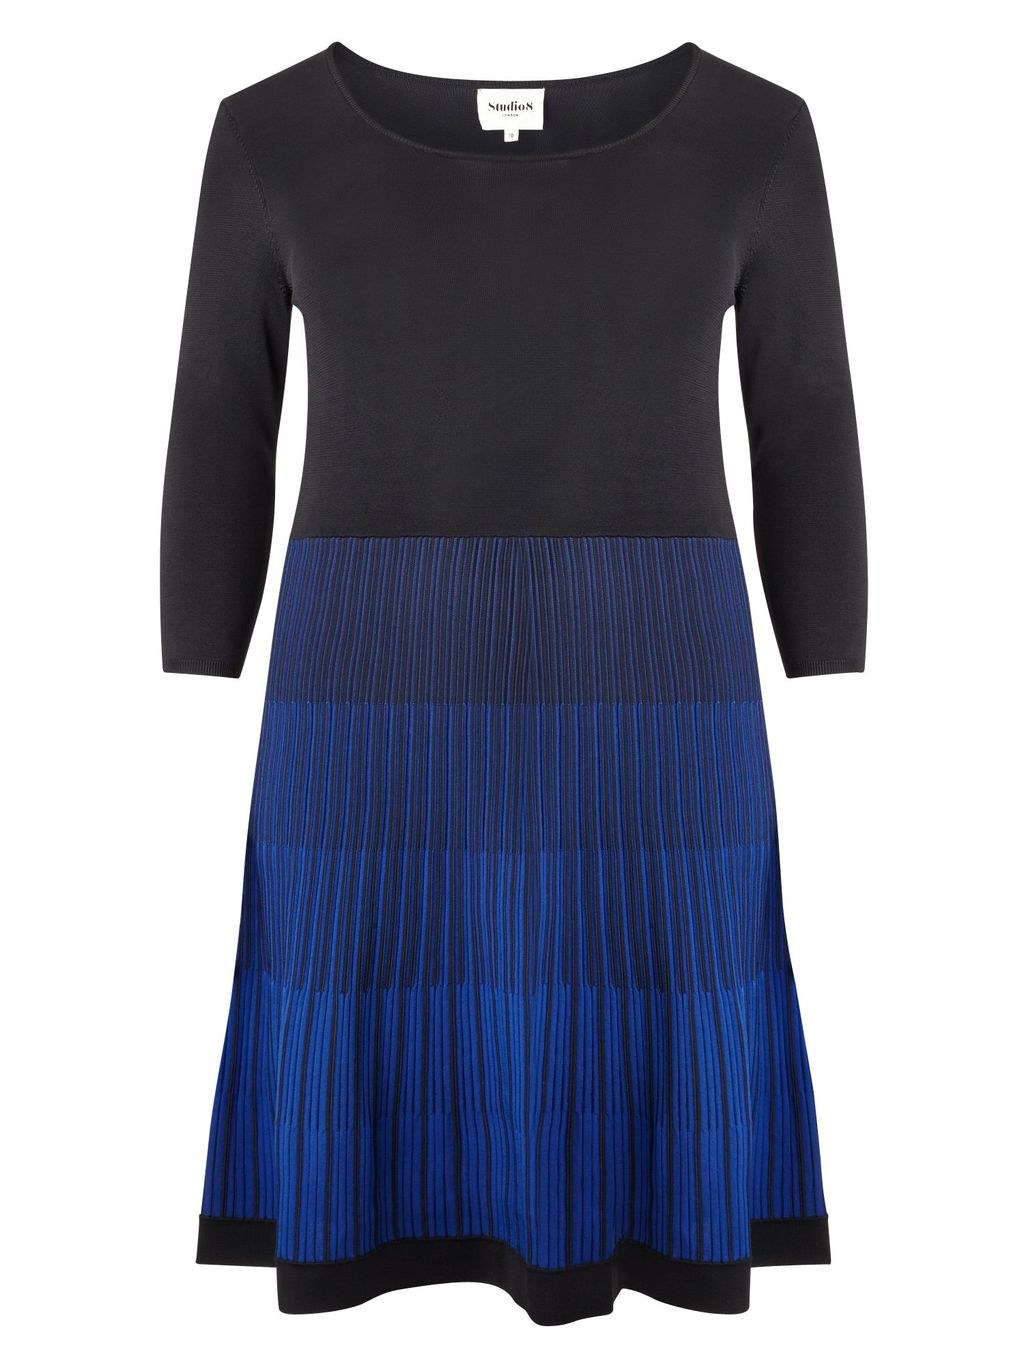 Karen Dress, Blue - length: mid thigh; neckline: round neck; secondary colour: royal blue; predominant colour: navy; occasions: casual; fit: fitted at waist & bust; style: fit & flare; hip detail: subtle/flattering hip detail; sleeve length: 3/4 length; sleeve style: standard; pattern type: fabric; pattern: colourblock; texture group: jersey - stretchy/drapey; fibres: viscose/rayon - mix; multicoloured: multicoloured; season: a/w 2015; wardrobe: highlight